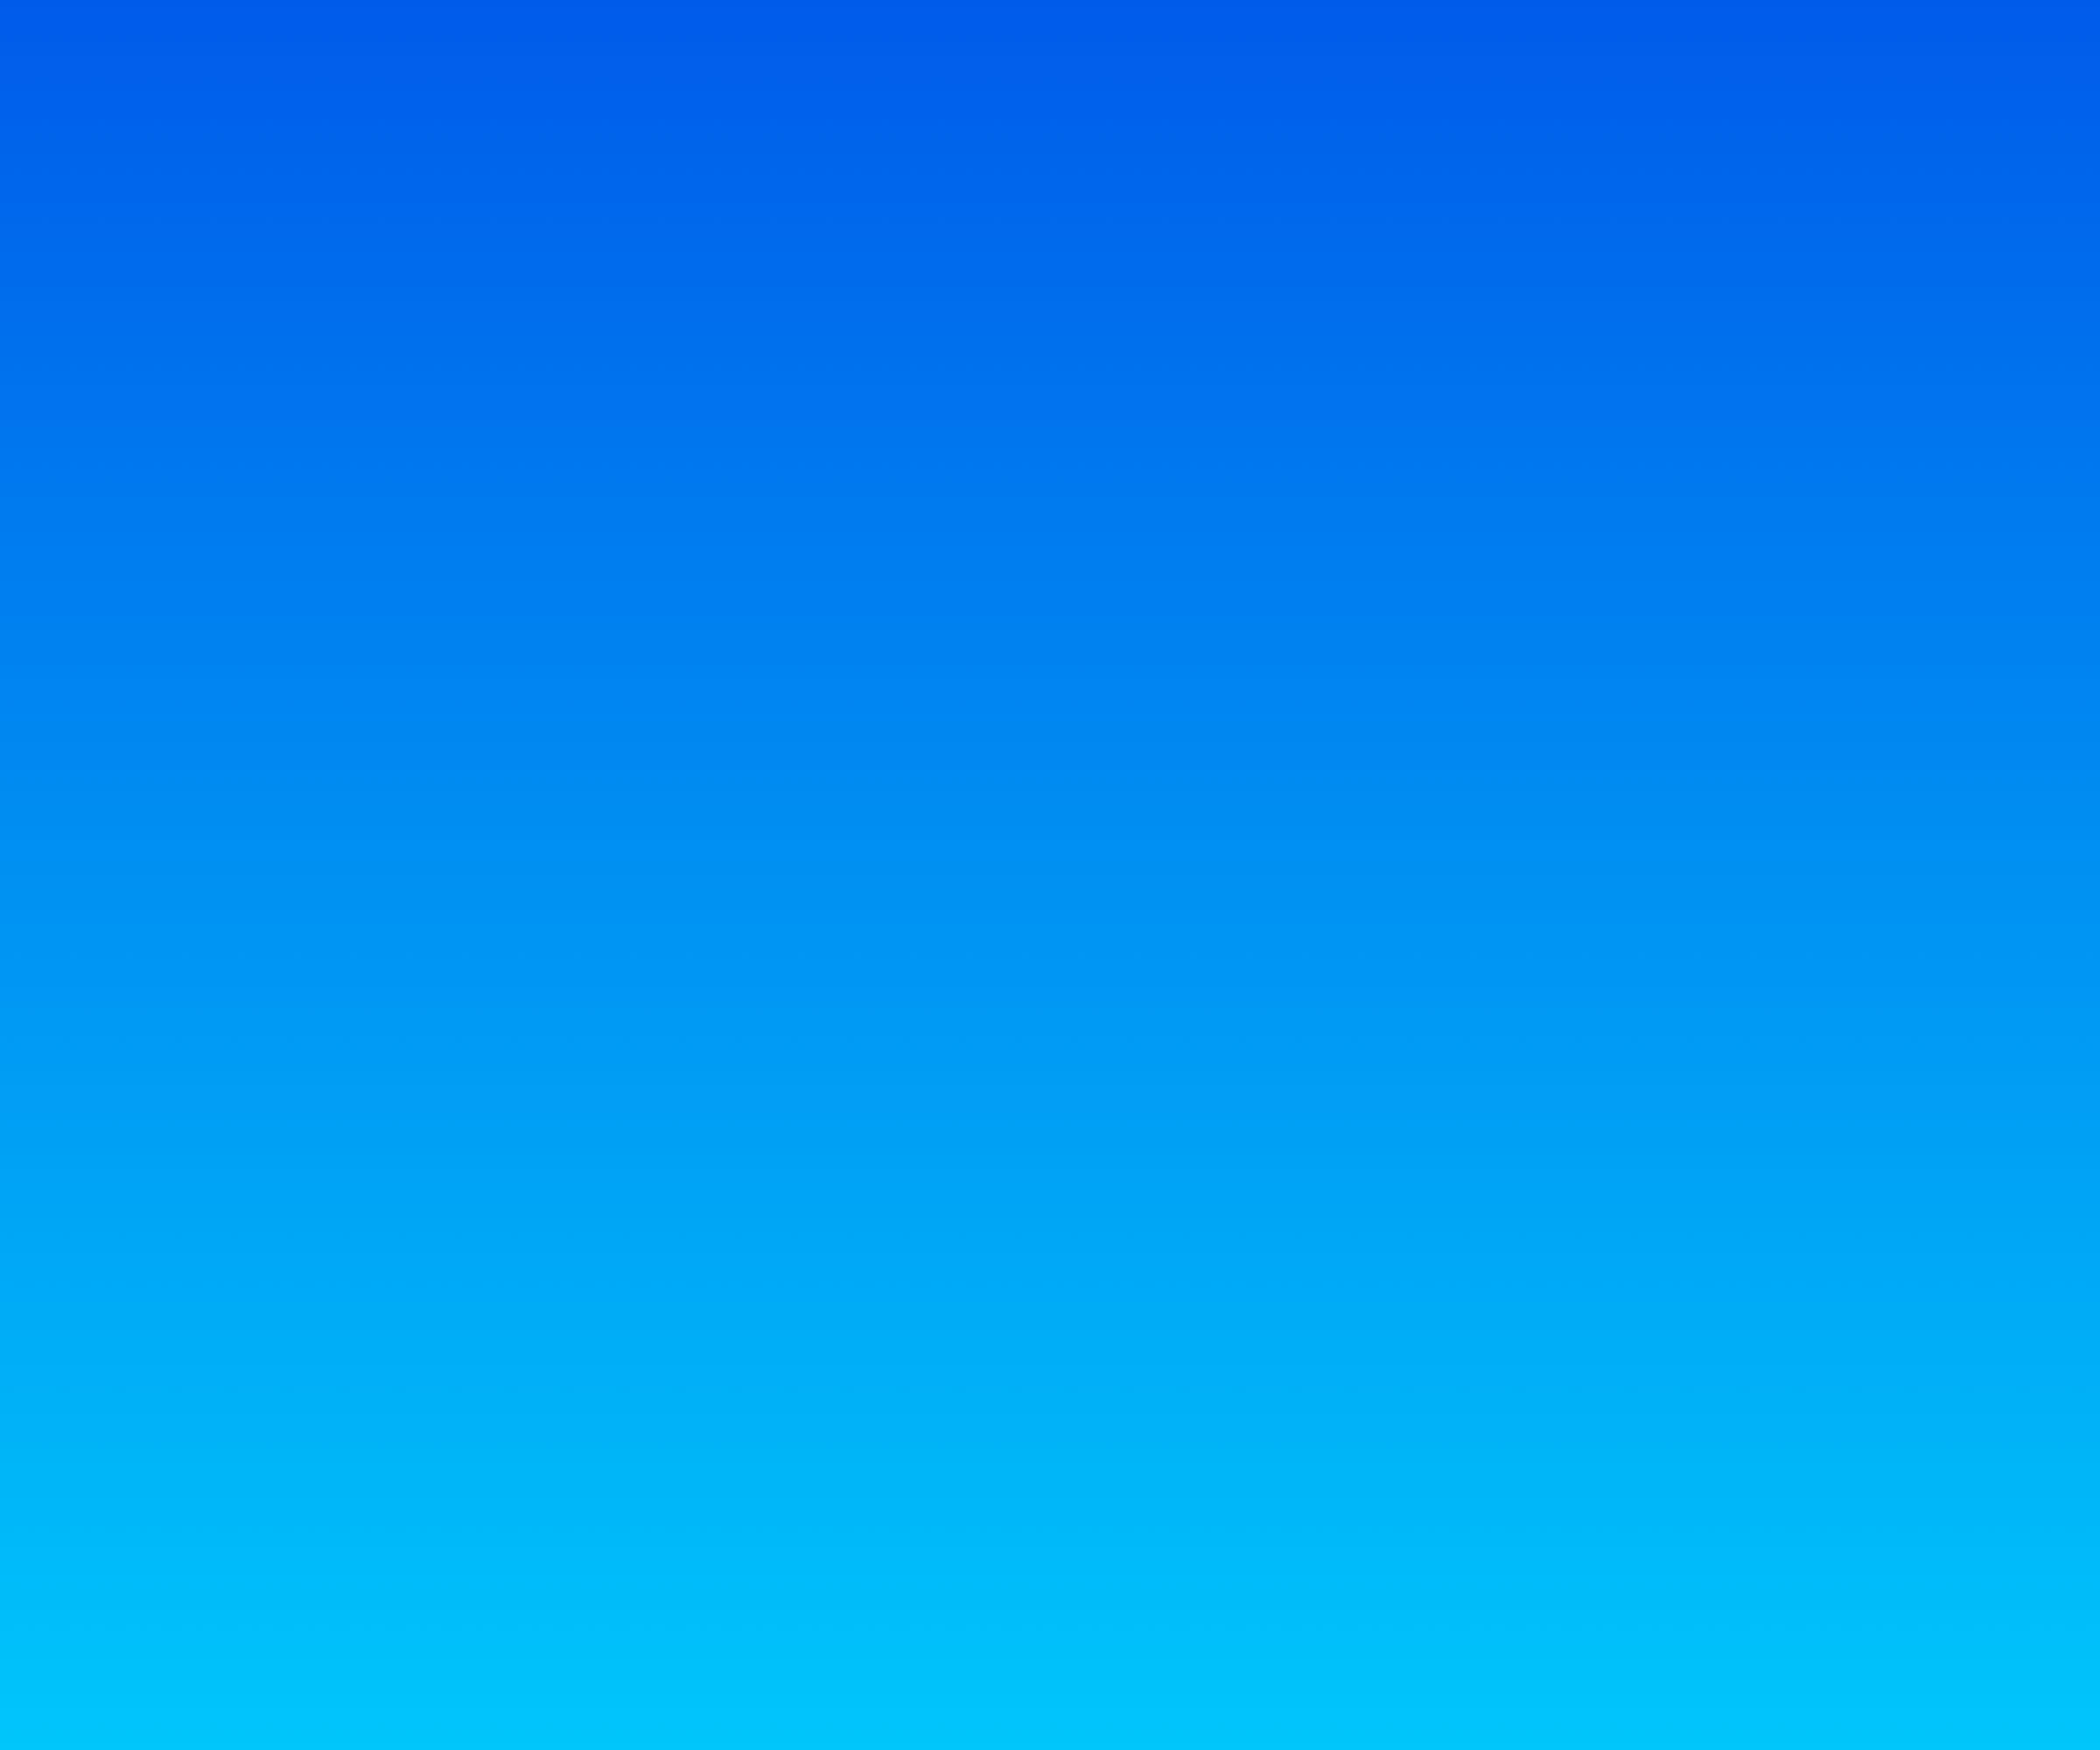 Sharp Blue Background